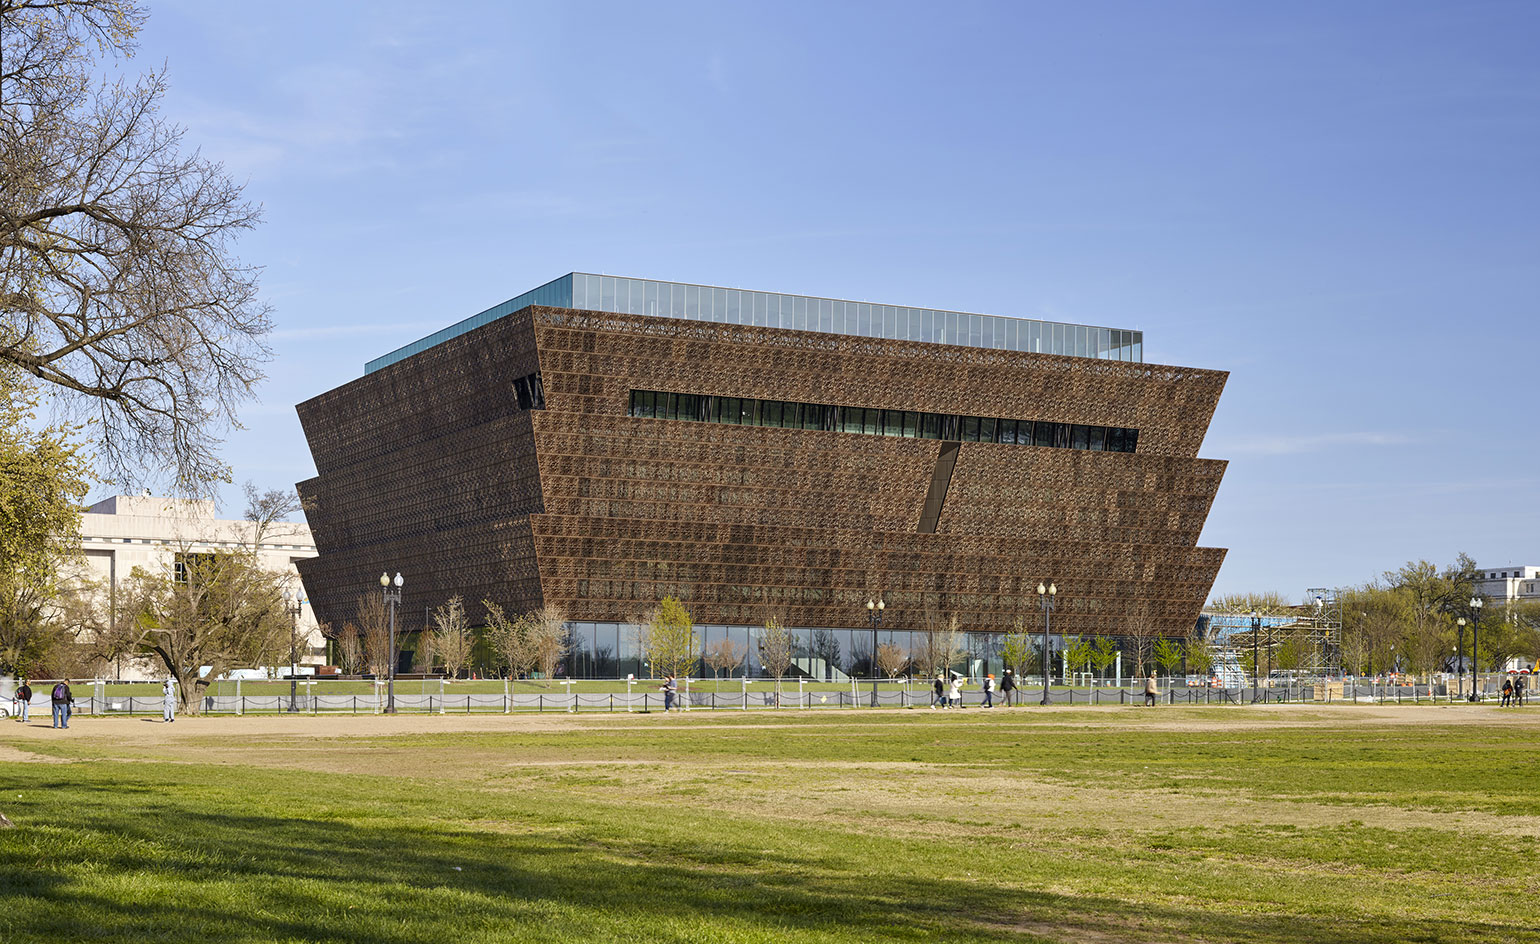 National Museum of African American History and Culture prepares to open in Washington, DC